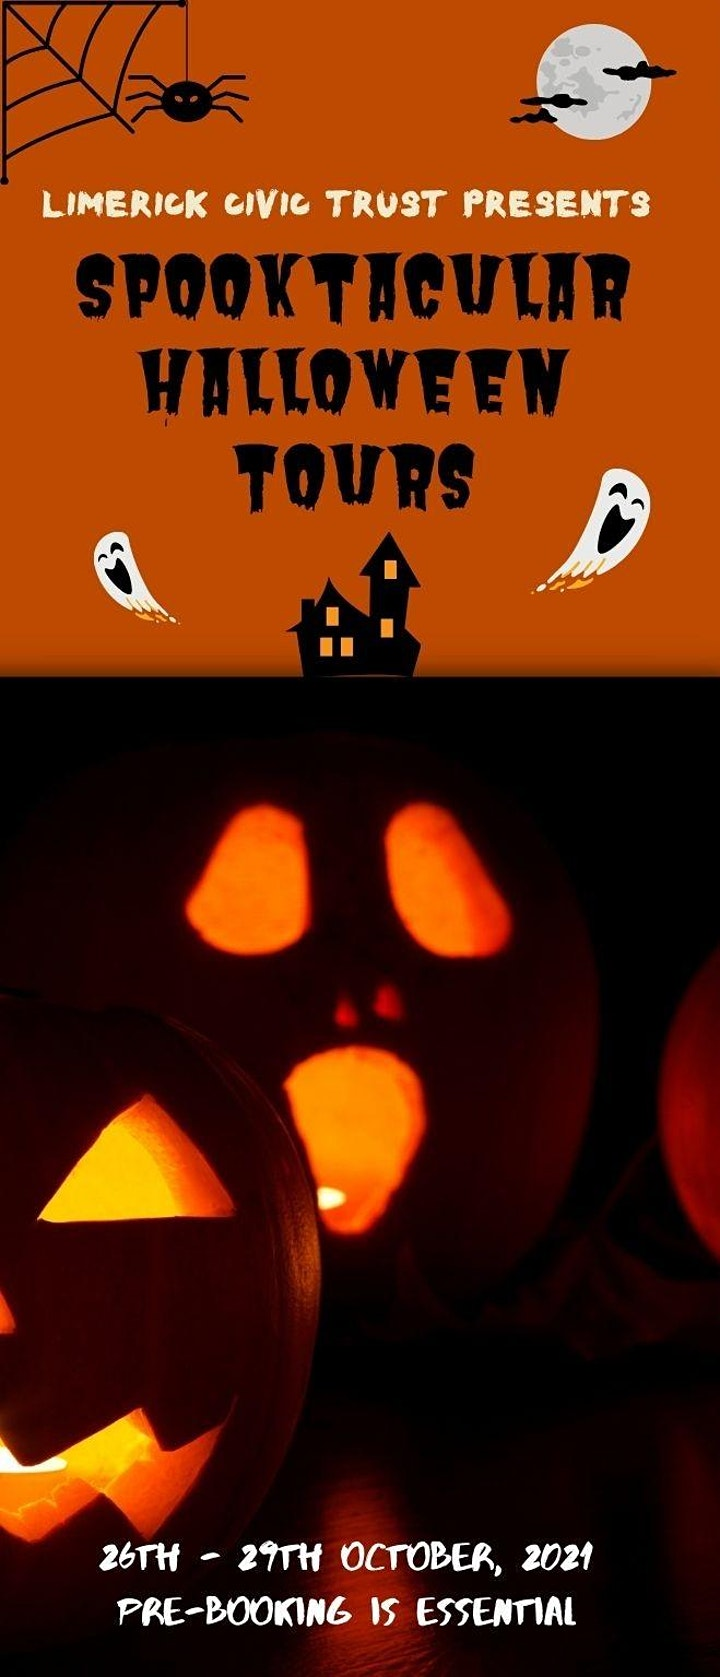 Spooktacular Halloween Tours - SOLD OUT image